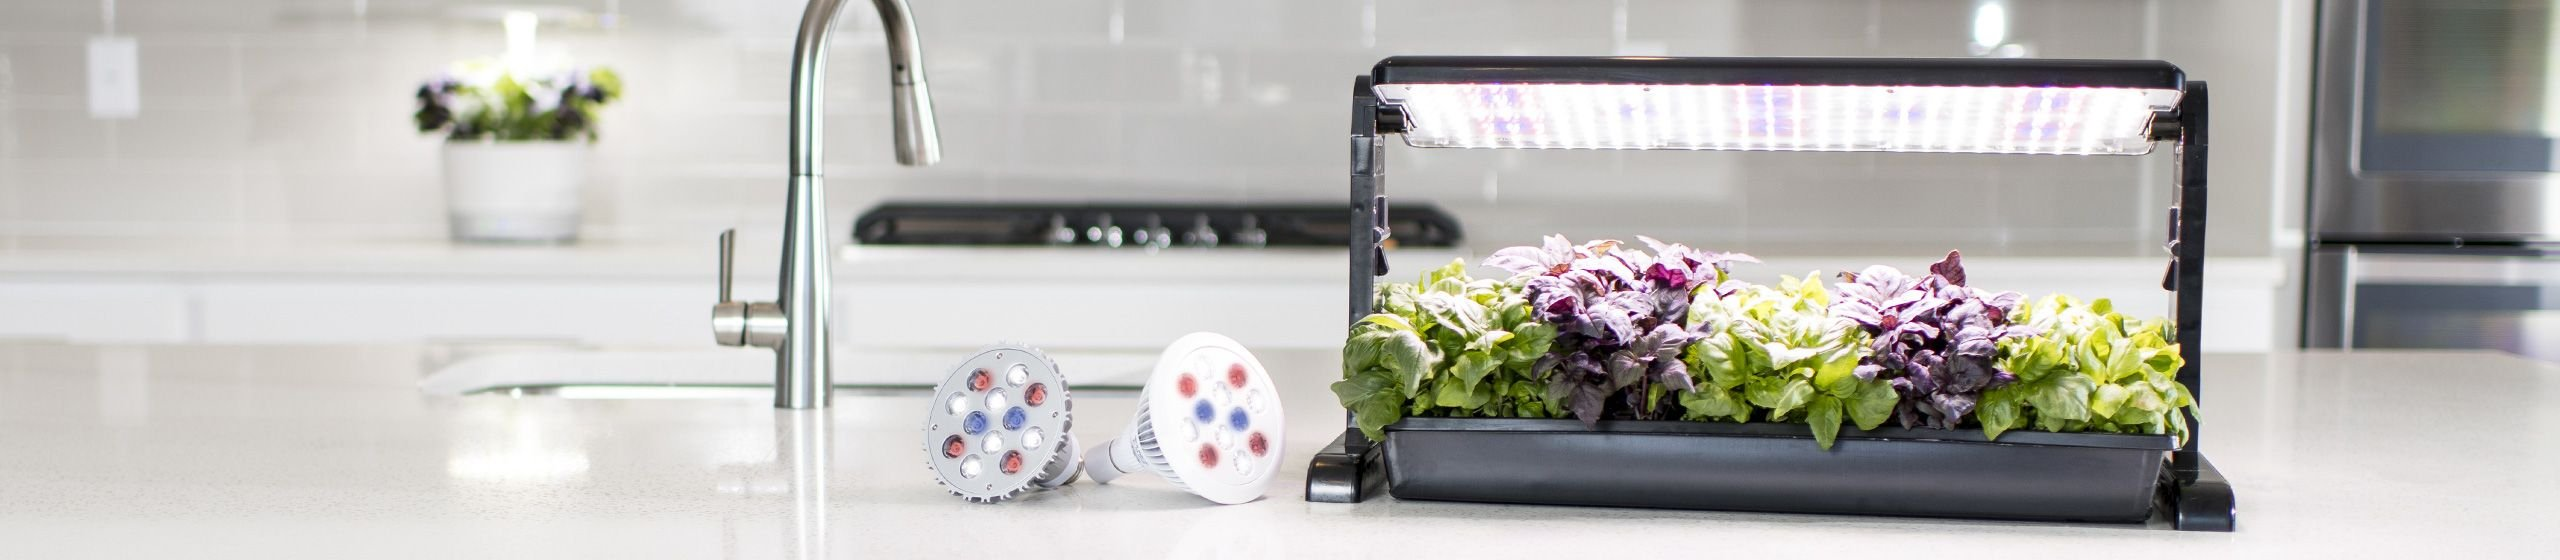 LED Grow Lights for Plants